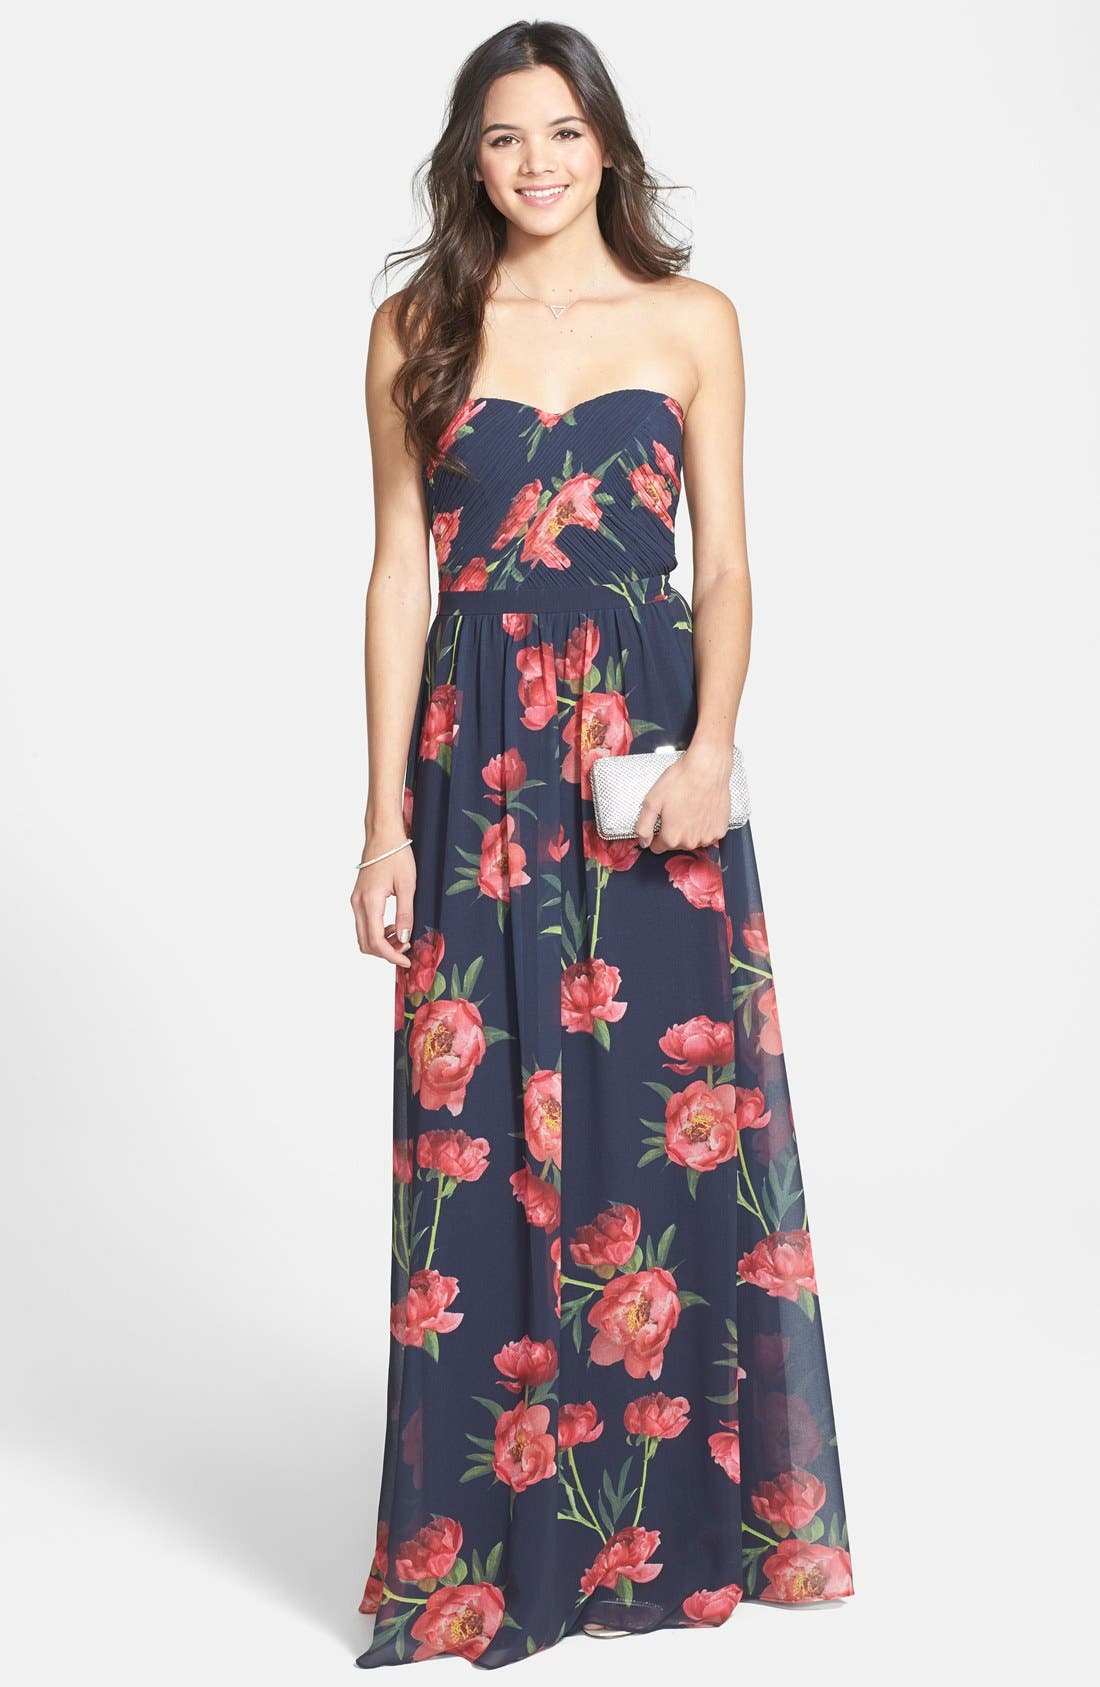 Main Image - ERIN erin fetherston Rose Print Chiffon Strapless Gown